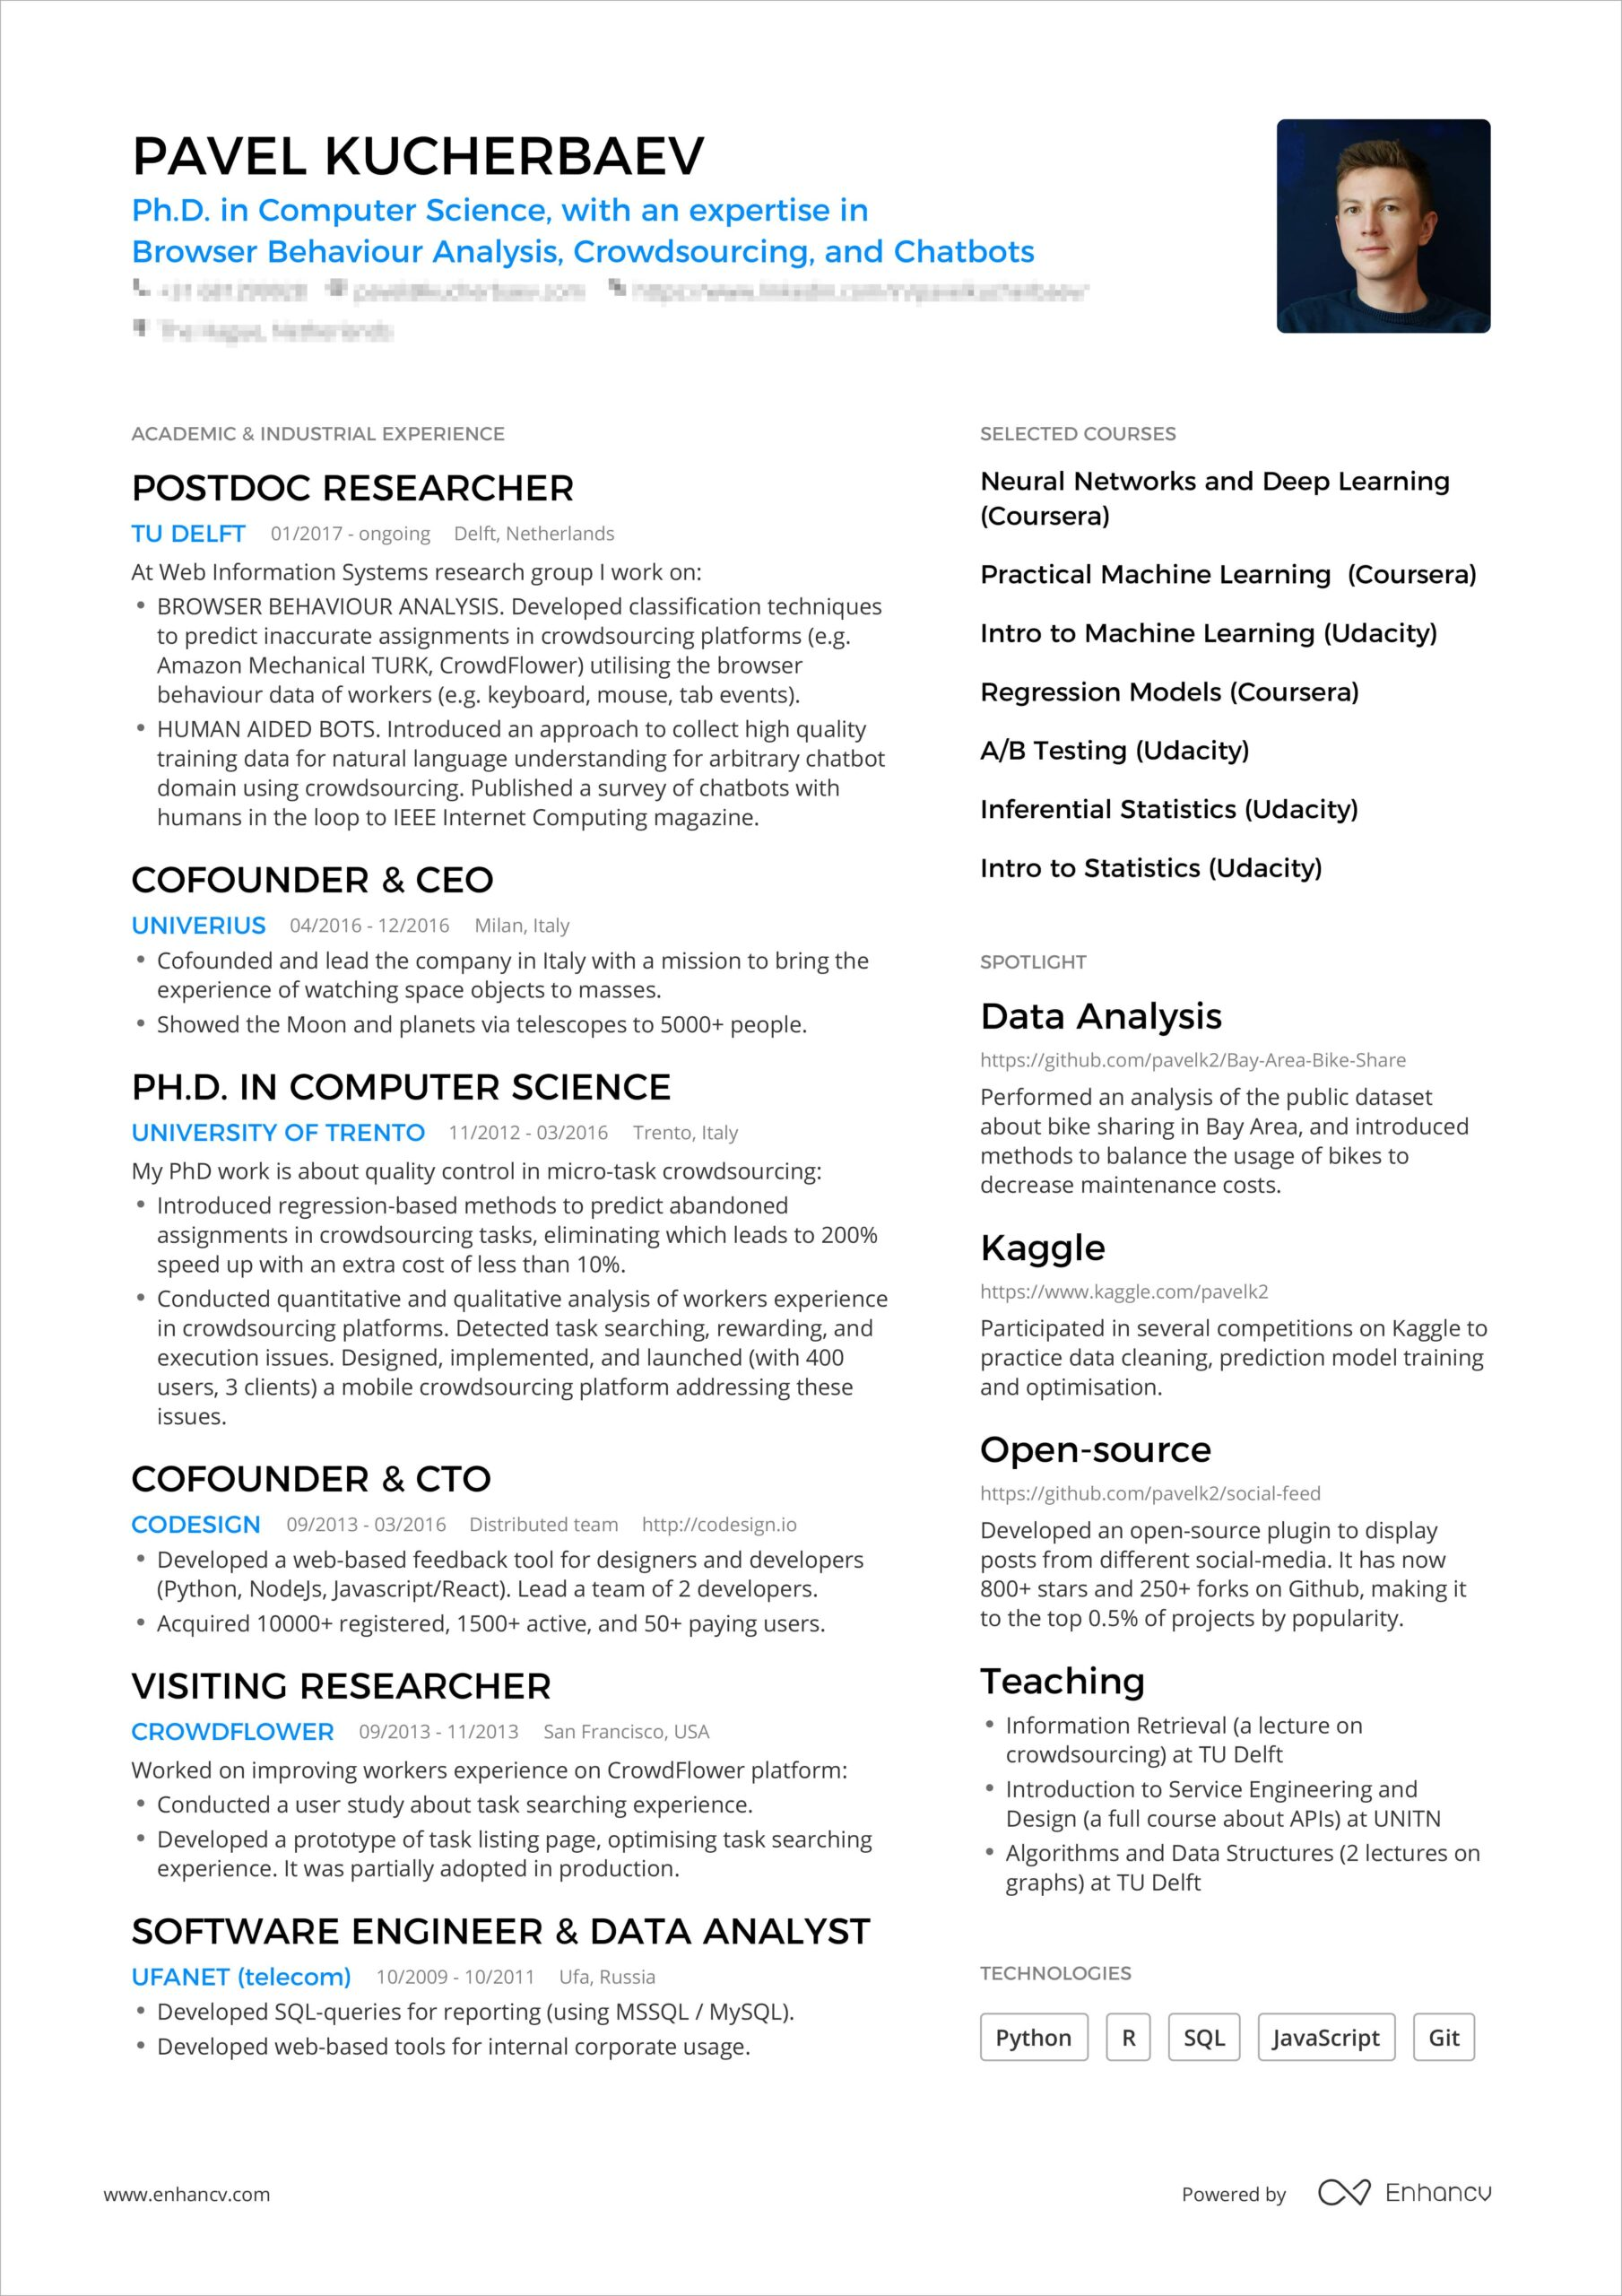 powerful one resume examples you can use now summary pavel booking bordered min erp Resume One Page Summary Resume